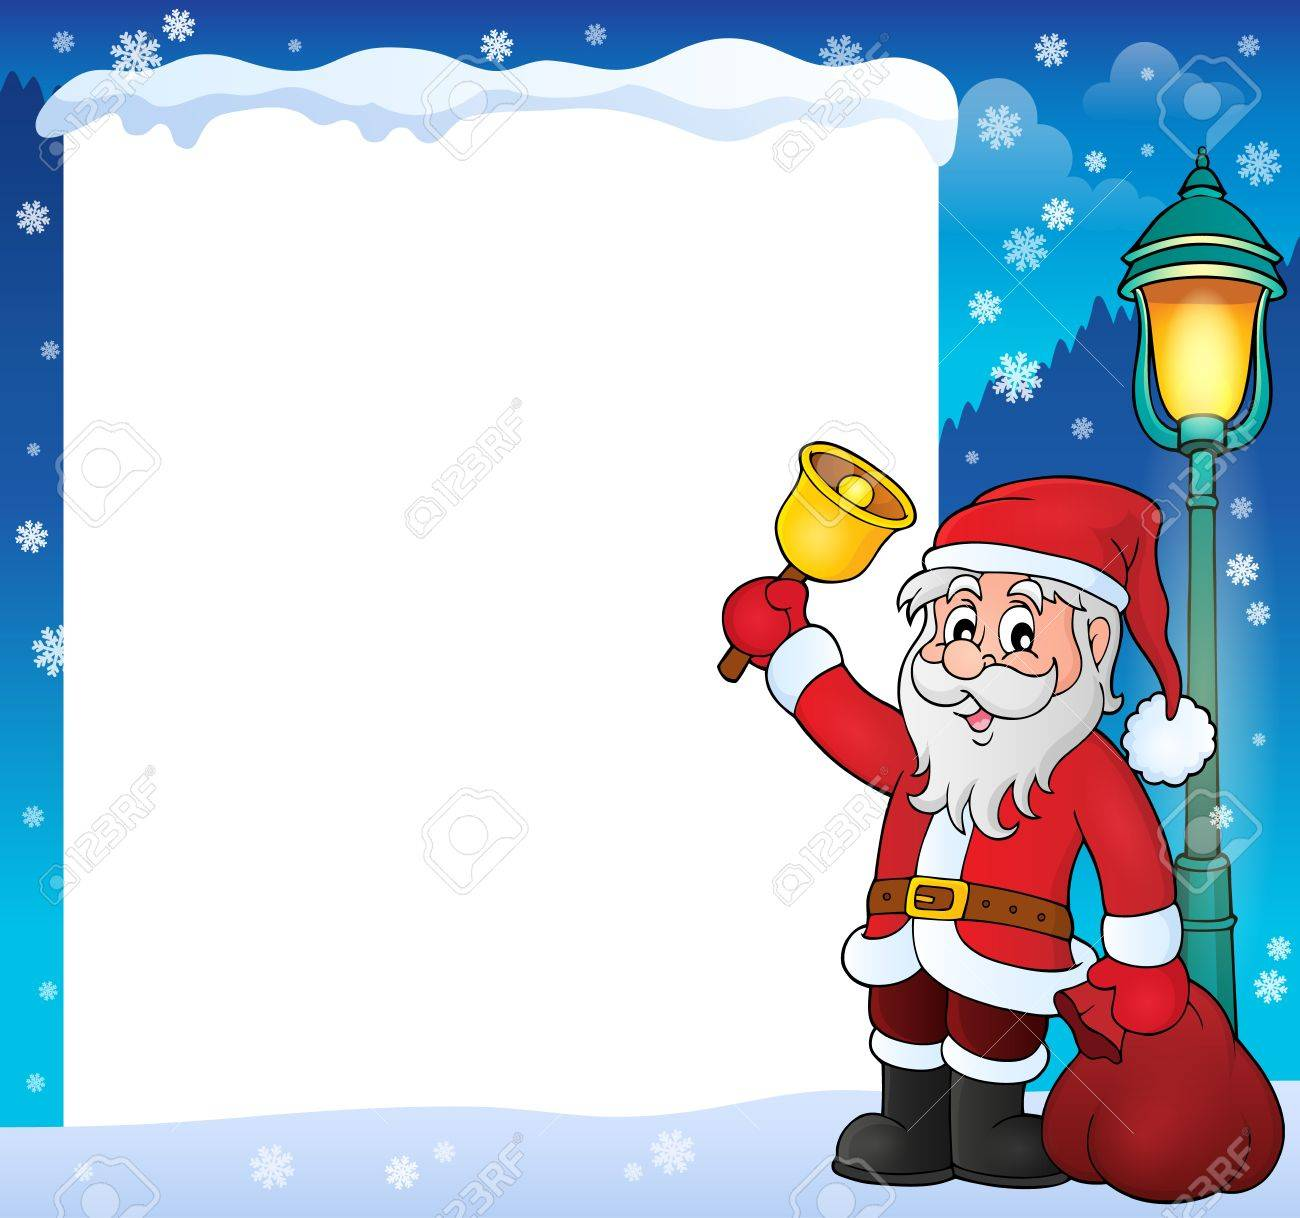 Santa Claus With Bell Theme Frame Vector Illustration